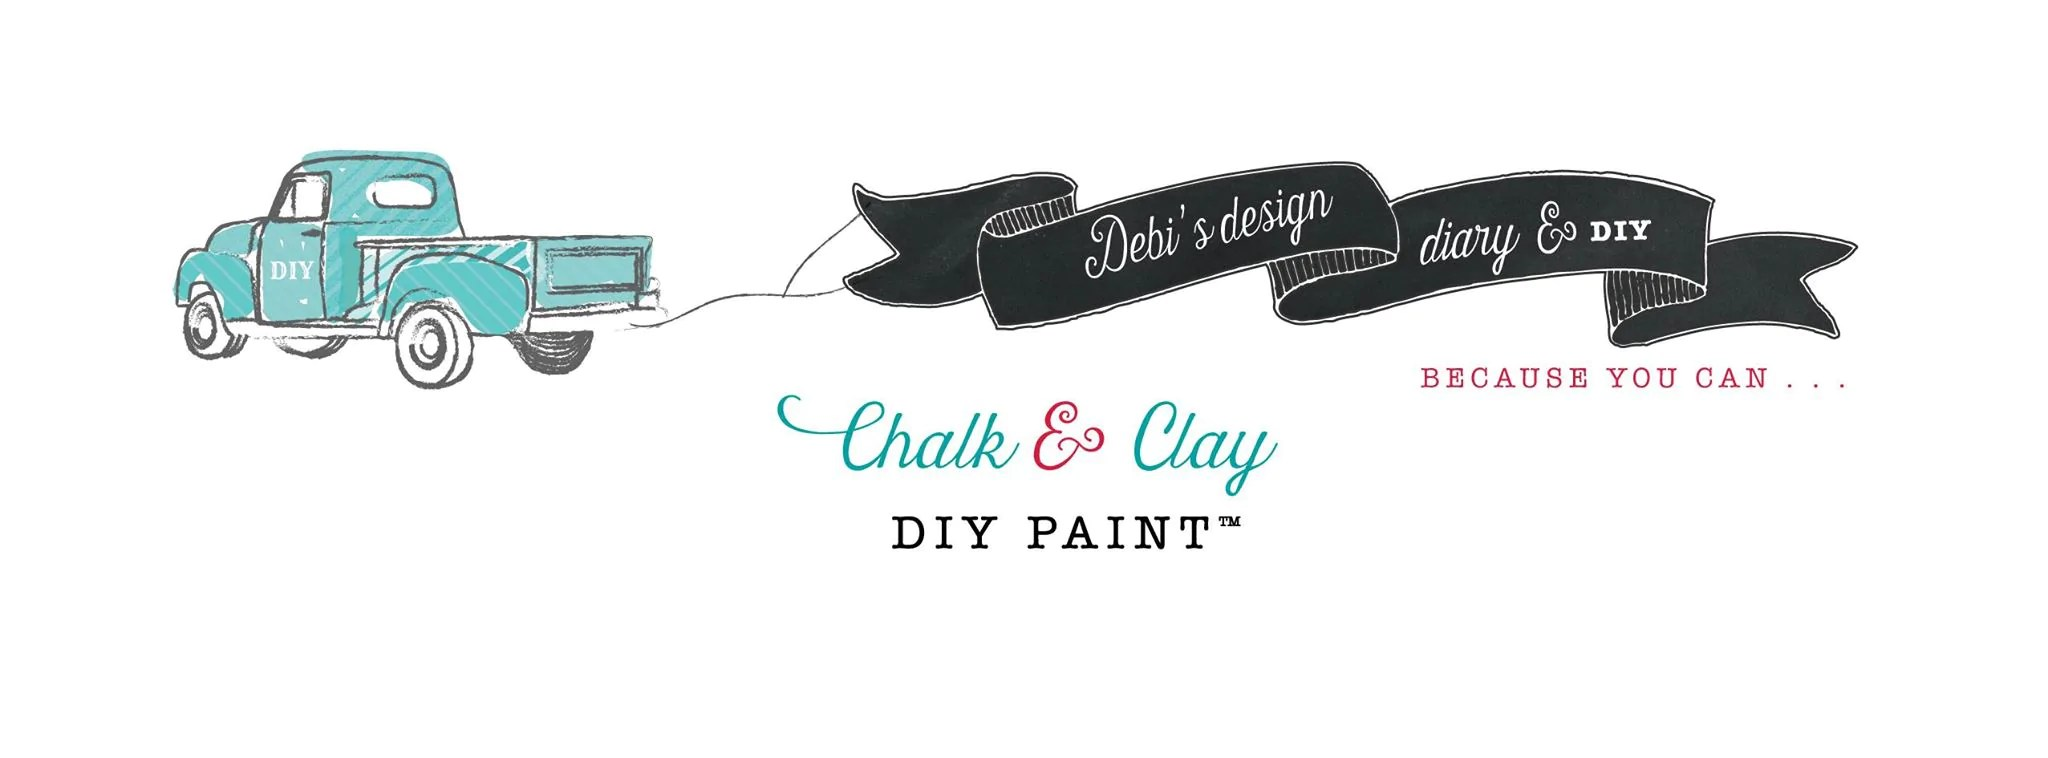 Diy Paint Canada Diy Paint Co